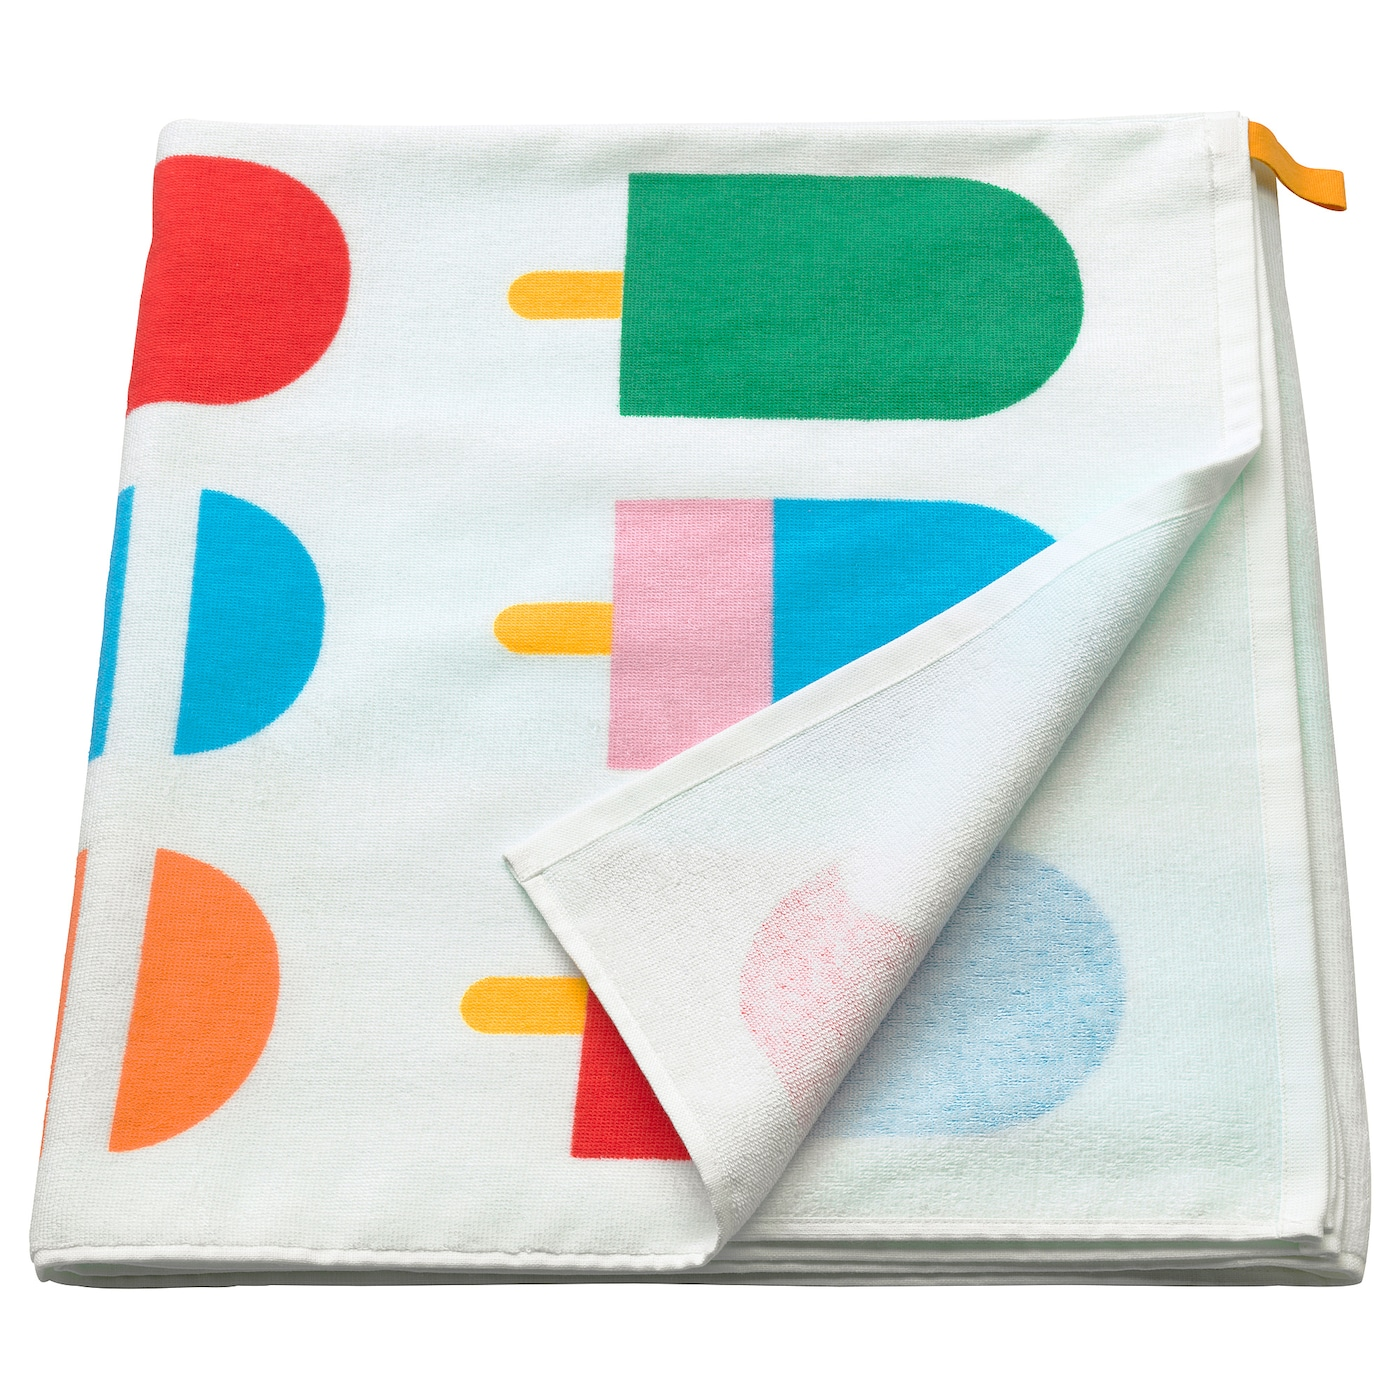 IKEA SOMMAR 2019 beach towel A terry towel that is soft and absorbent (weight 380 g/m²).